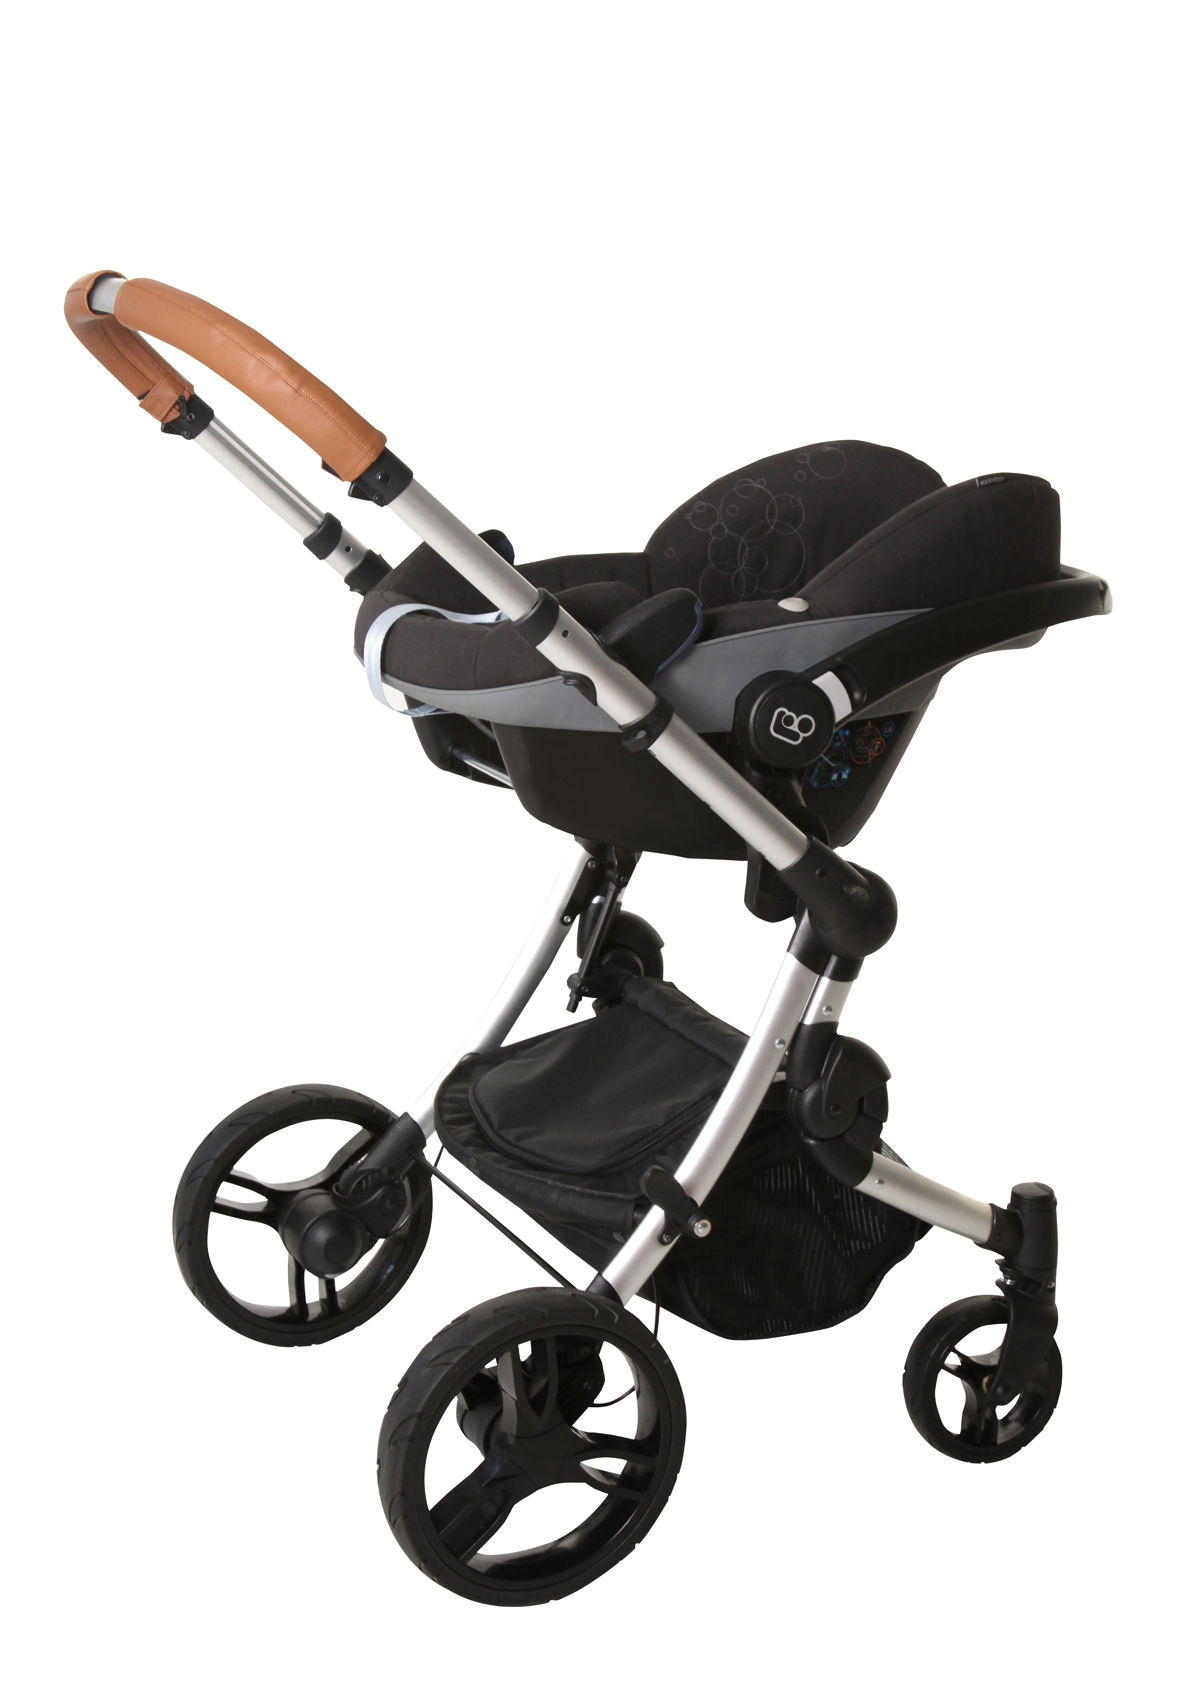 joker mit babyschale jette kinderwagen. Black Bedroom Furniture Sets. Home Design Ideas